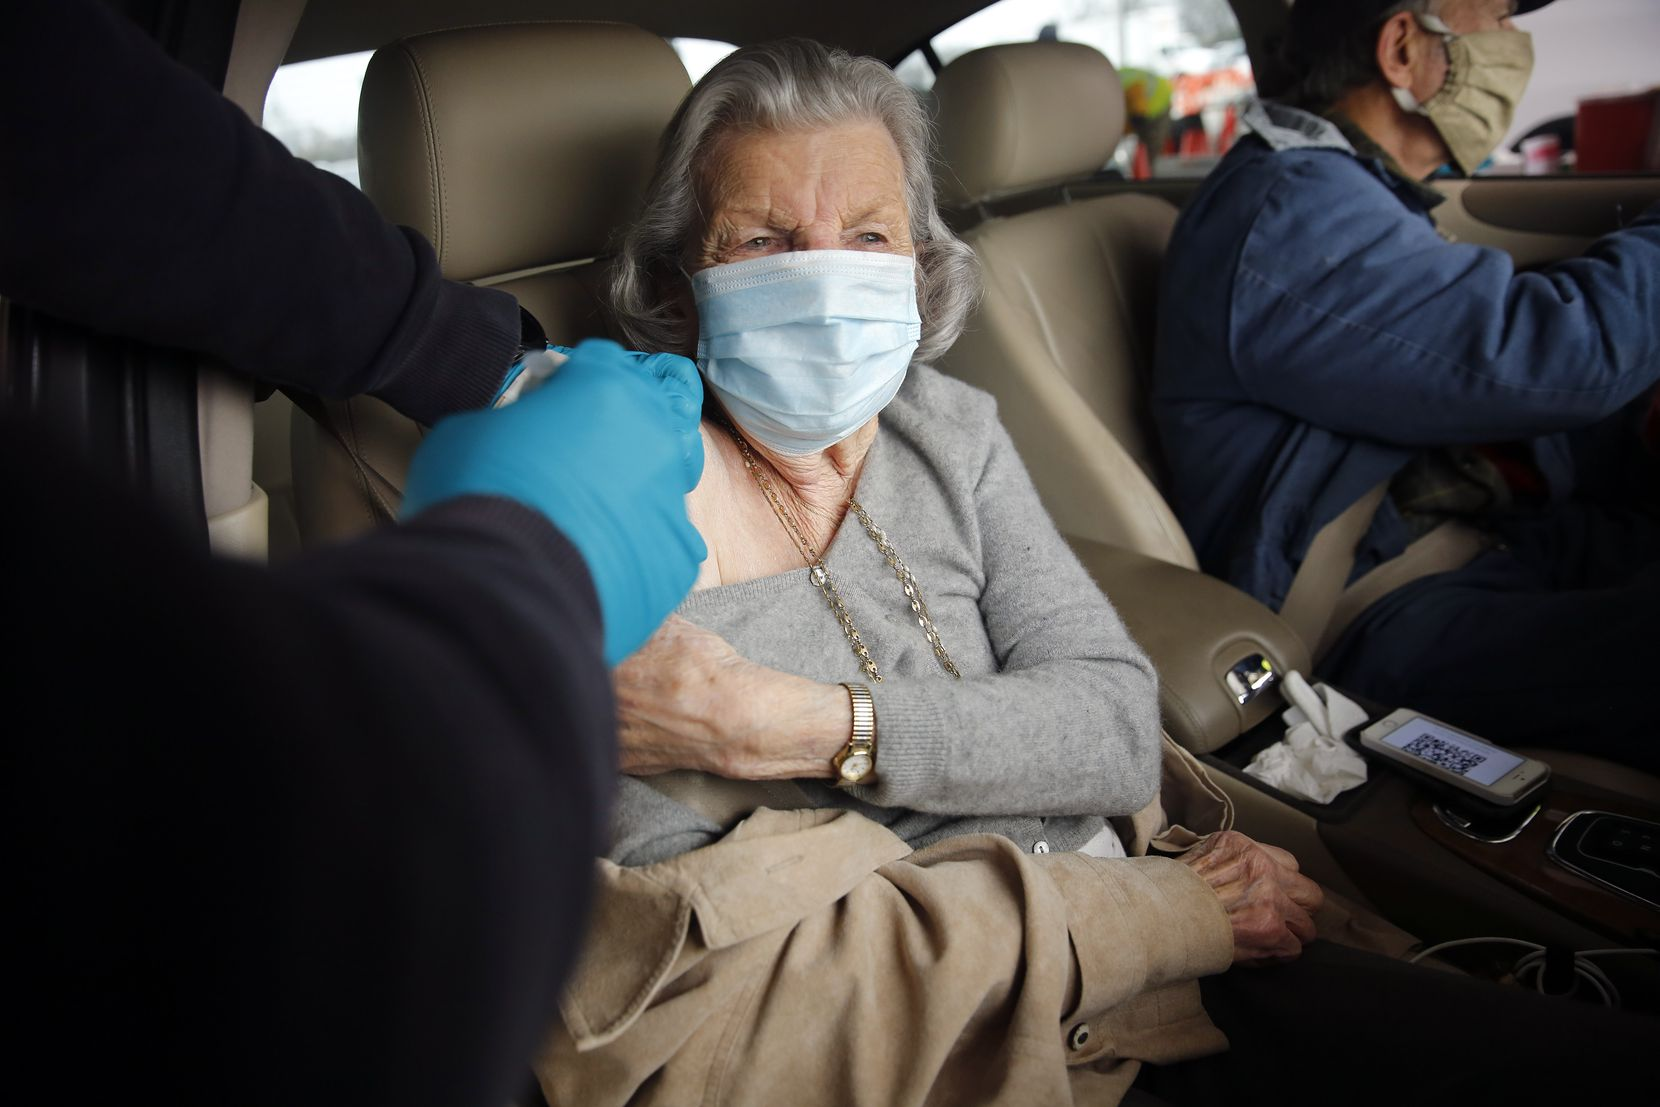 Ethel Radovich of Dallas received her second COVID-19 vaccination shot in a drive-thru lane at Fair Park in Dallas, Wednesday, February 10, 2021. (Tom Fox/The Dallas Morning News)